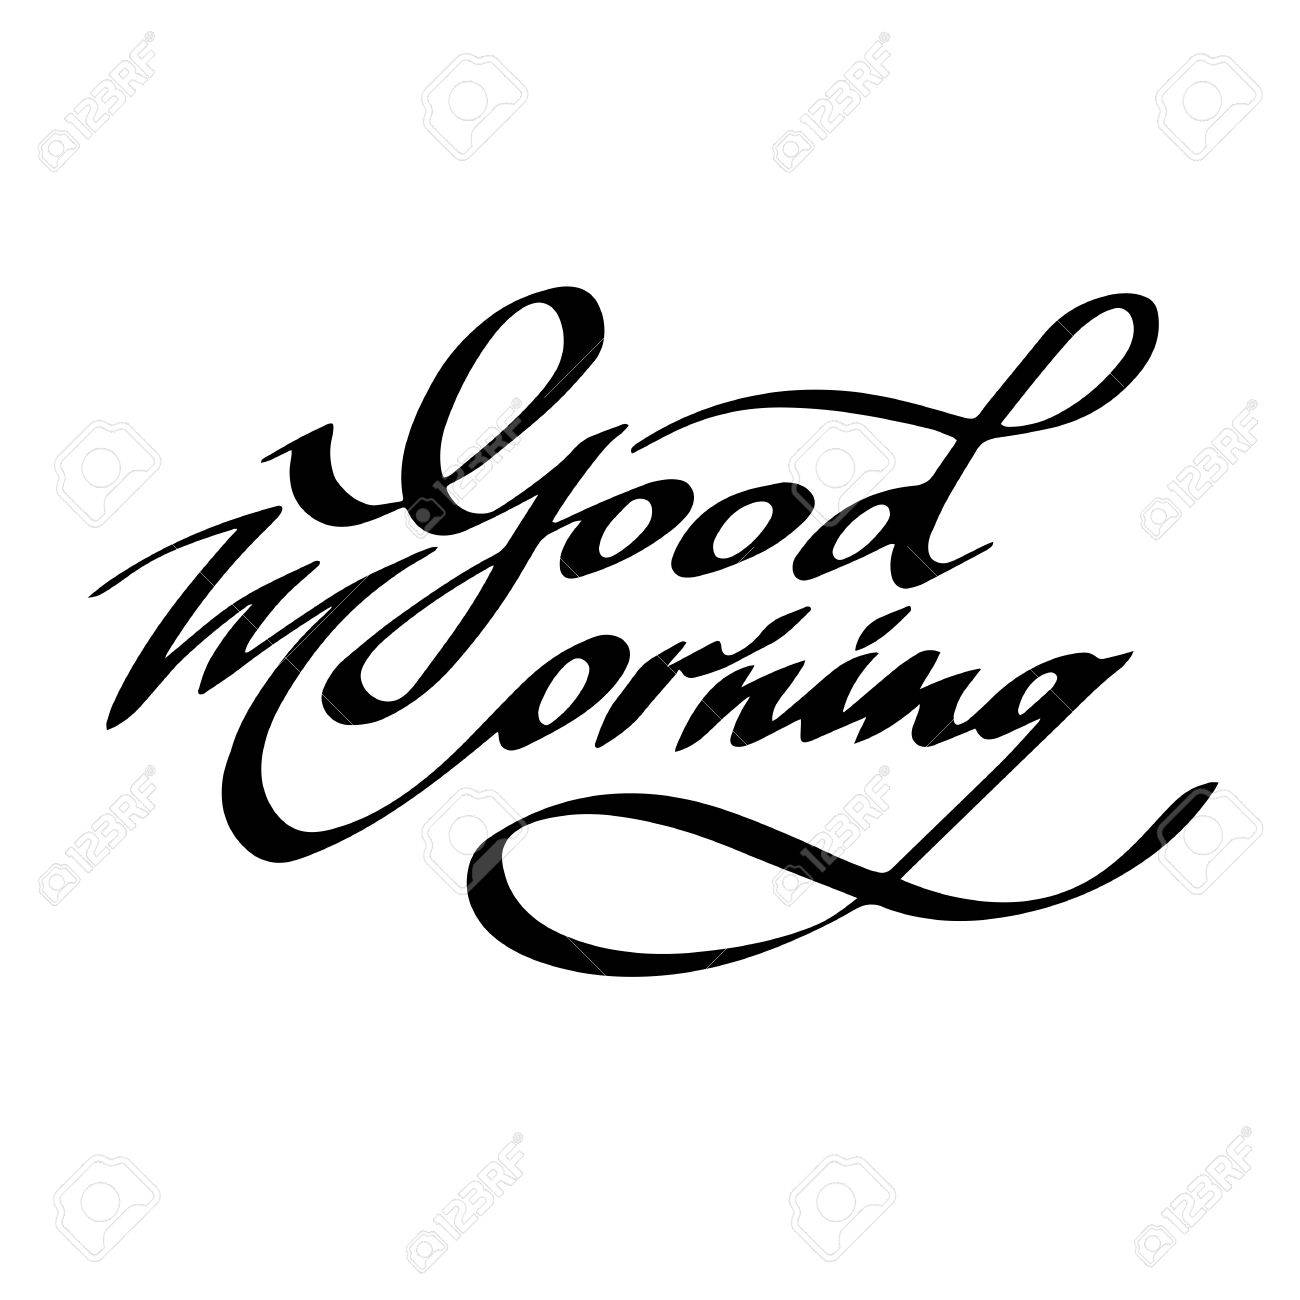 Good morning phrase in black ink on a white background lettering and calligraphy stock